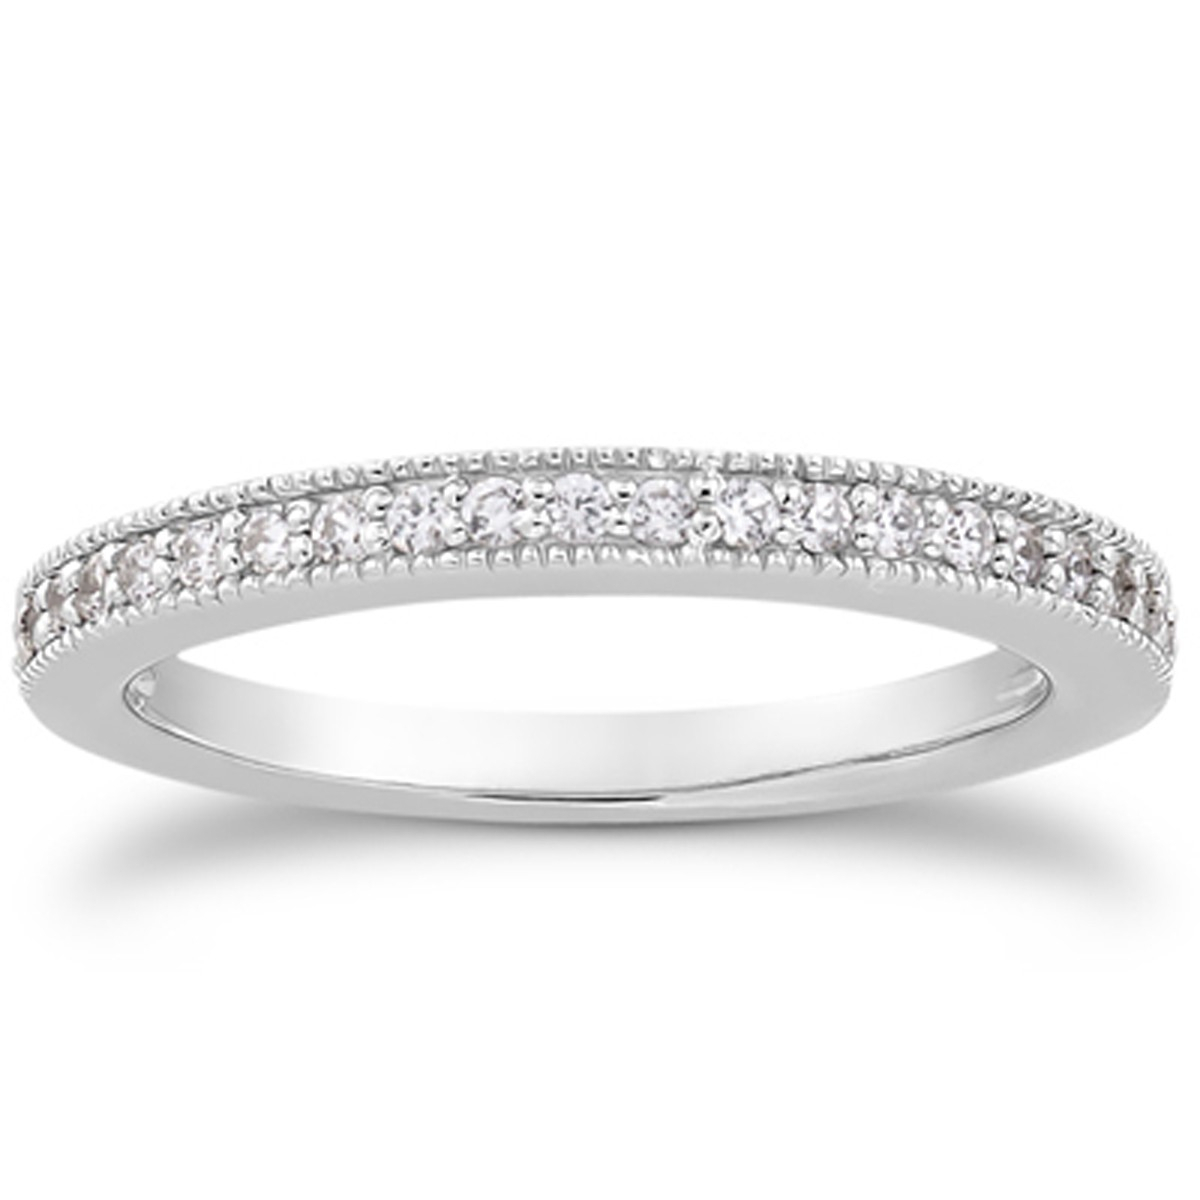 Pave Diamond Milgrain Wedding Ring Band In 14k White Gold In Most Recently Released Micropavé Diamond Narrow Wedding Bands (View 7 of 25)